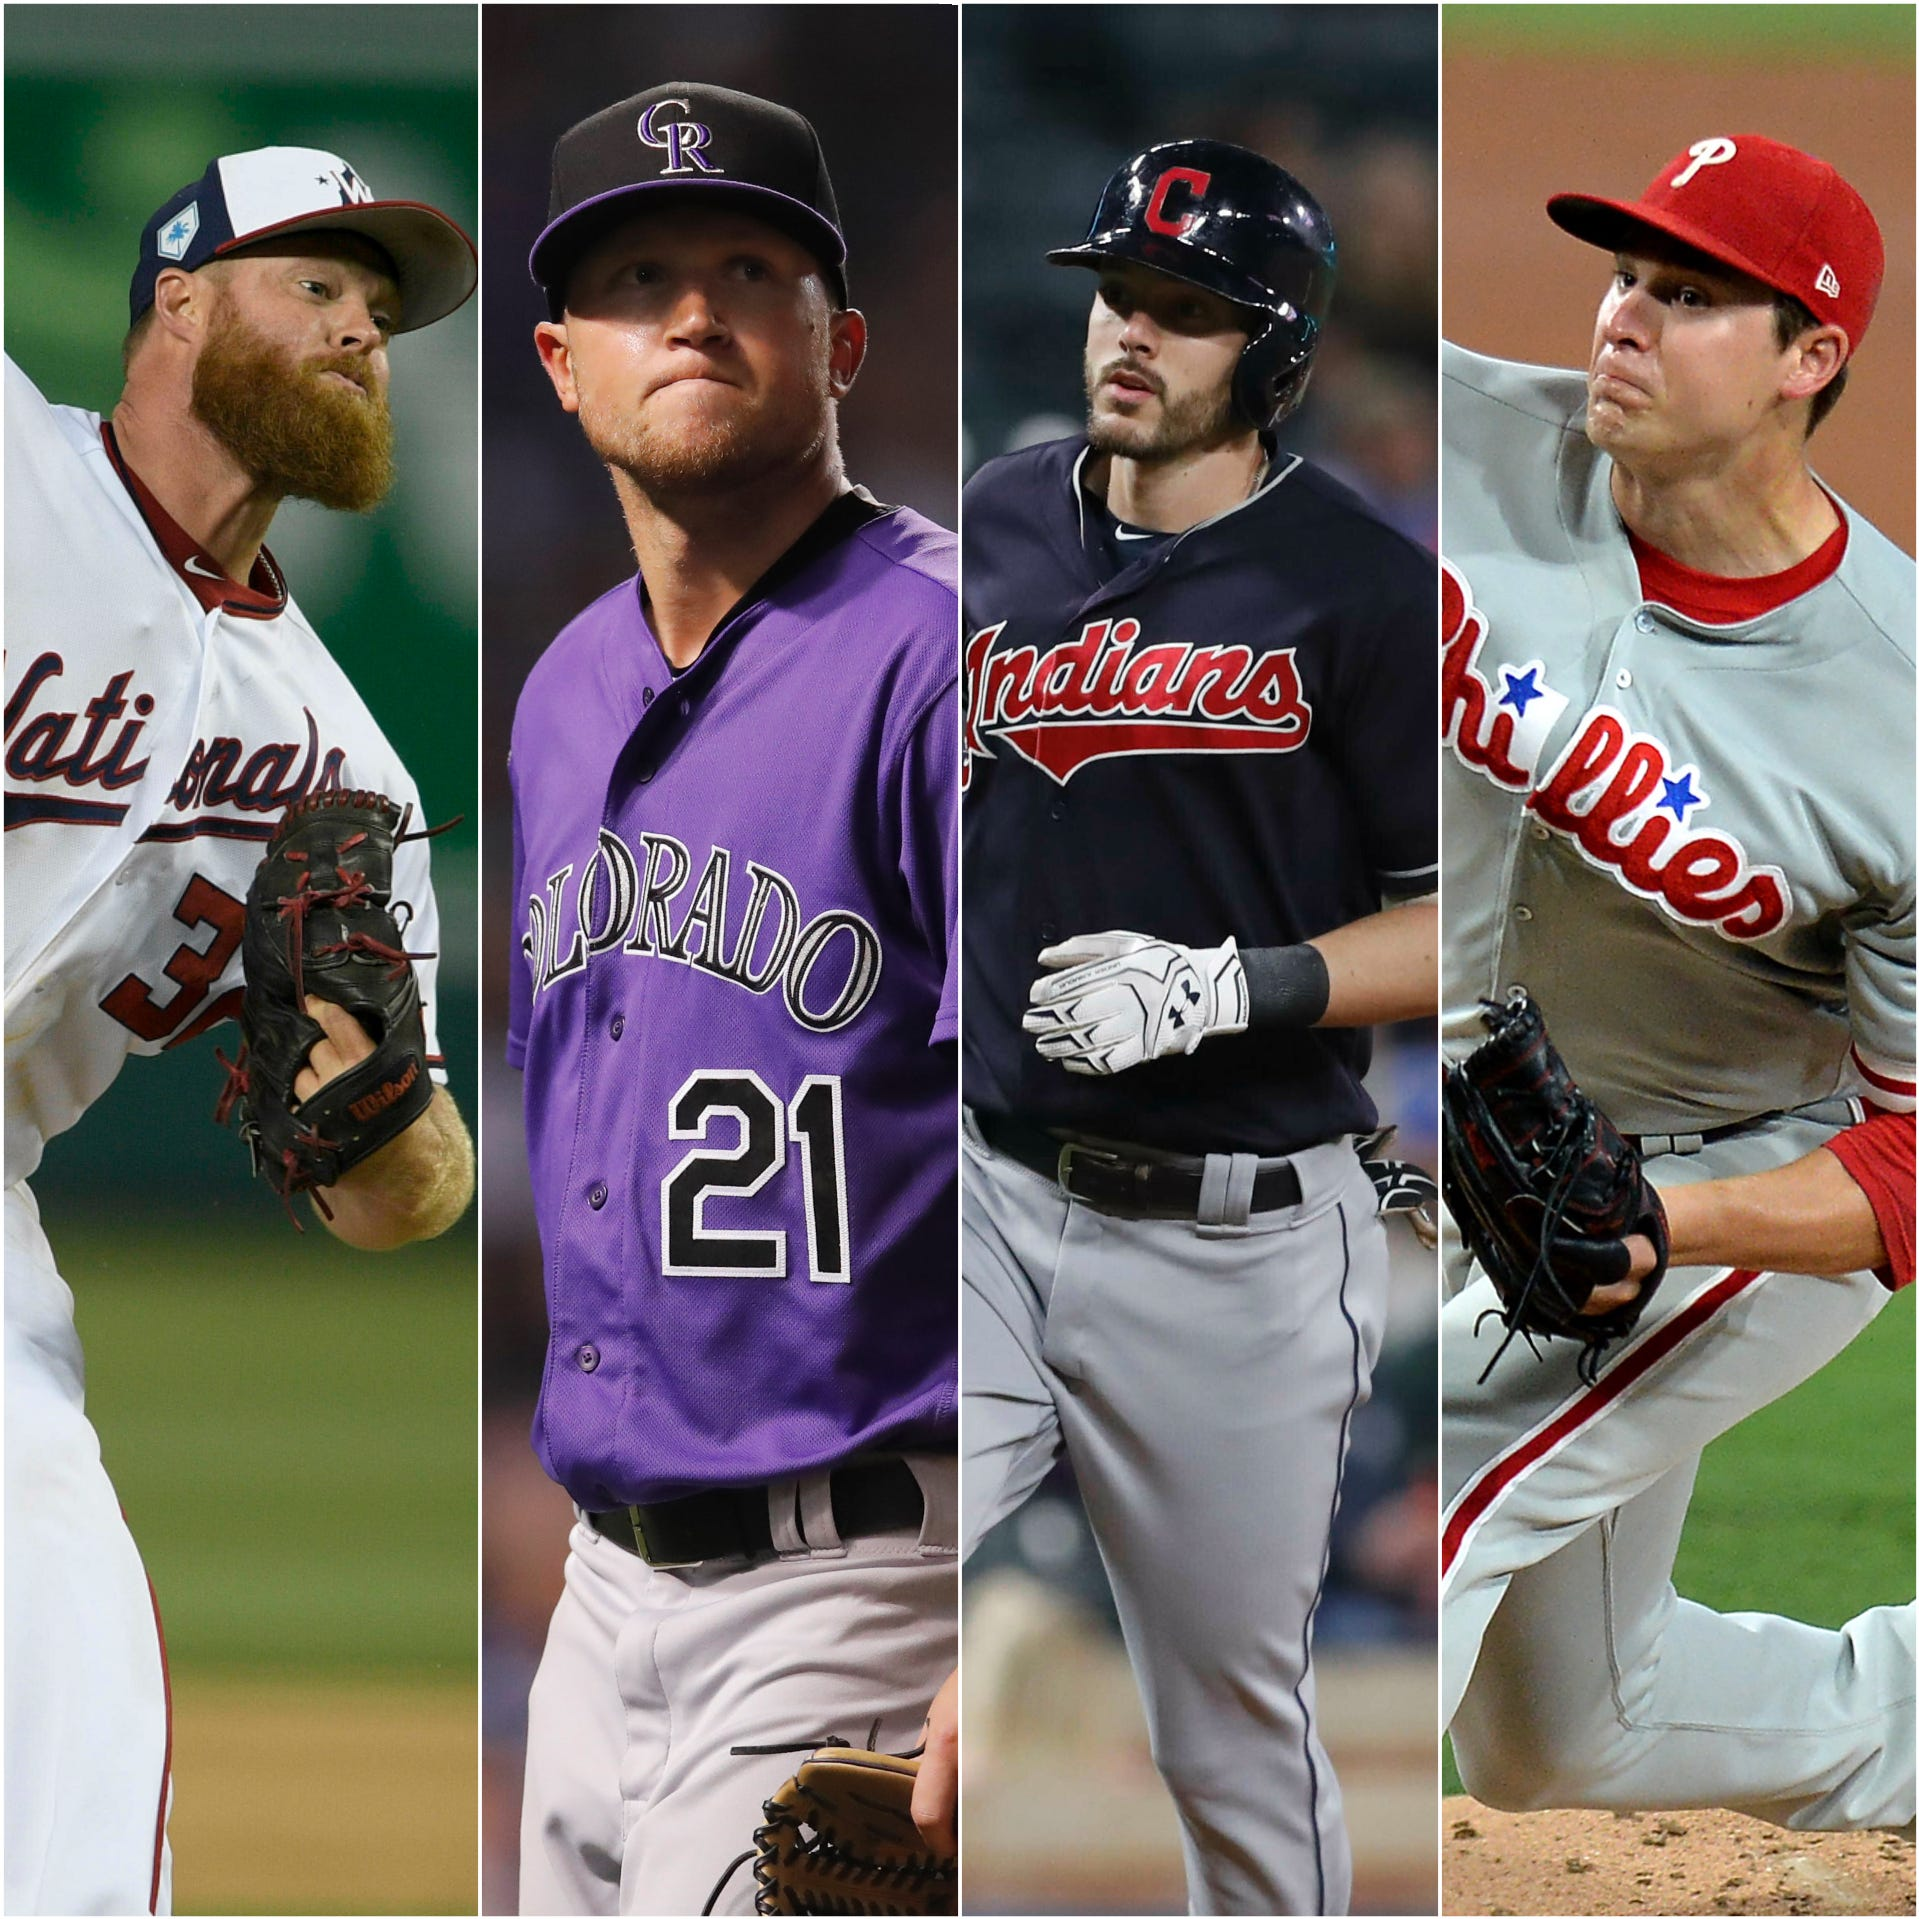 On MLB Opening Day, Evansville represented at manager, starting pitcher and shortstop